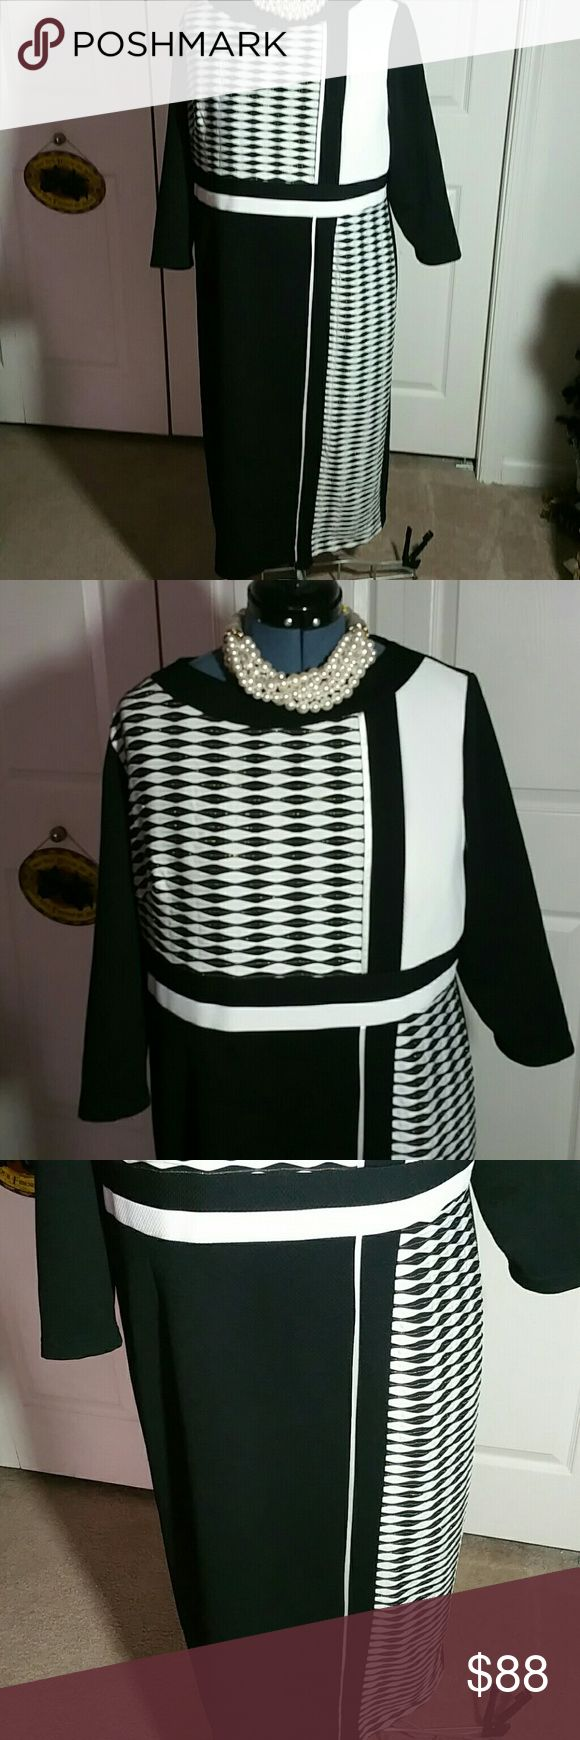 *BOG2 - Buy One And Get Two FREE - BOG2* Black and White Dress....... Size 18.......   Zipper 17 inches......Length 46 inches.....Sleeves 18 inches.....Underarm to underarm 23 inches......Waist 22 inches........spot on side front dress........Fully lined..........Bundle three items and offer me the highest price item...the other two are yours FREE! Terramina Dresses Maxi